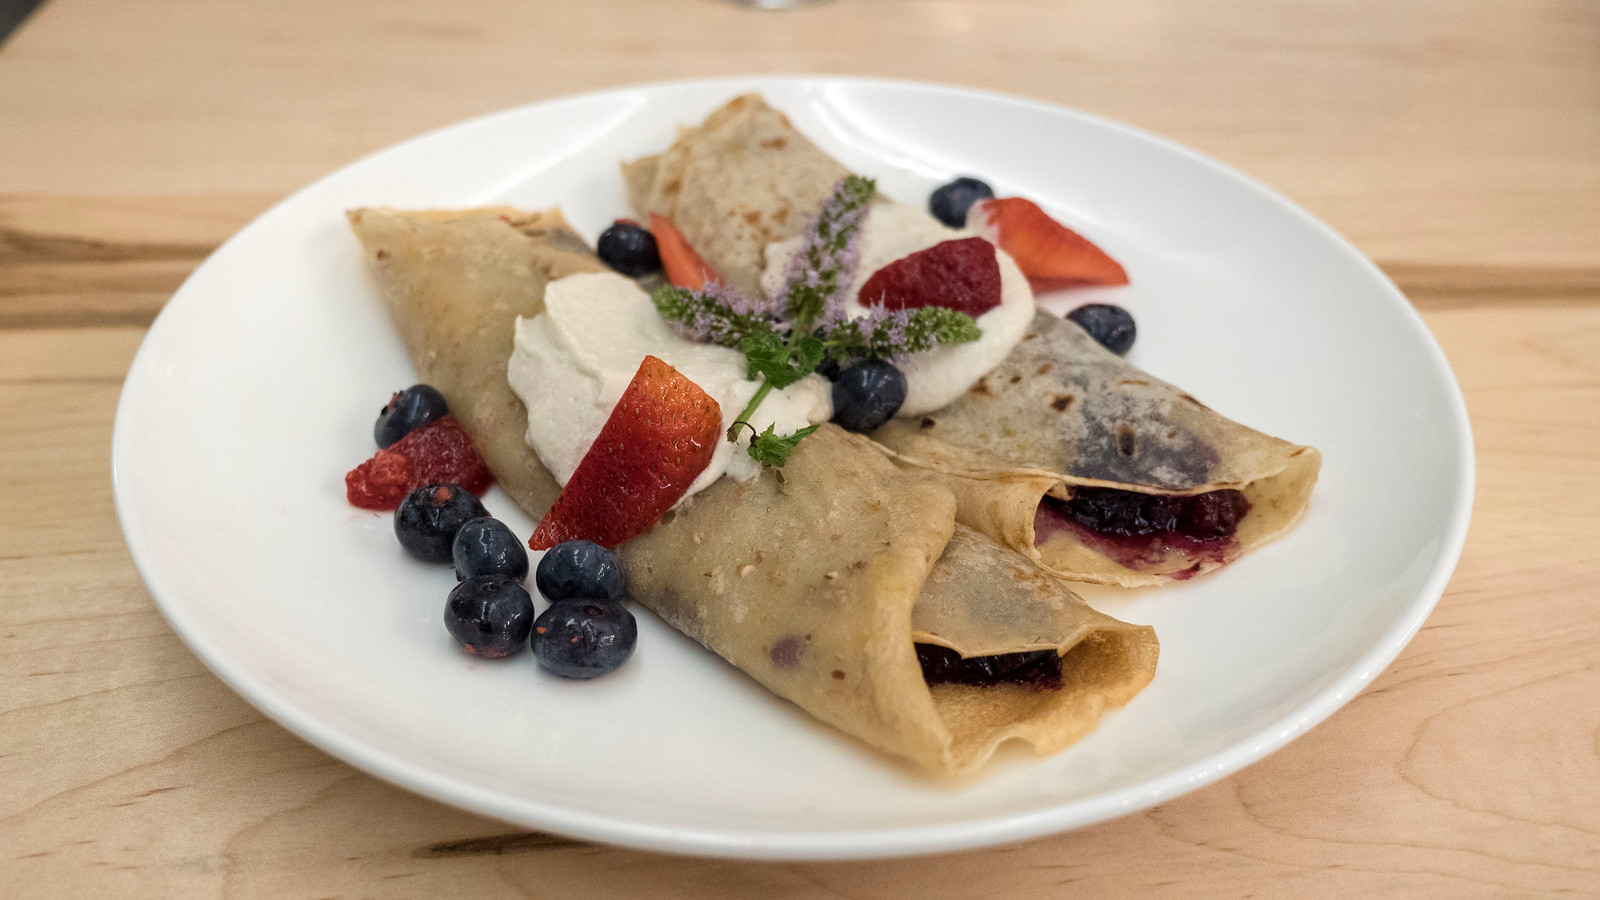 Vegan crepe at Barrel Bistro. Grand Bend Vegan and Vegetarian Restaurant Guide.